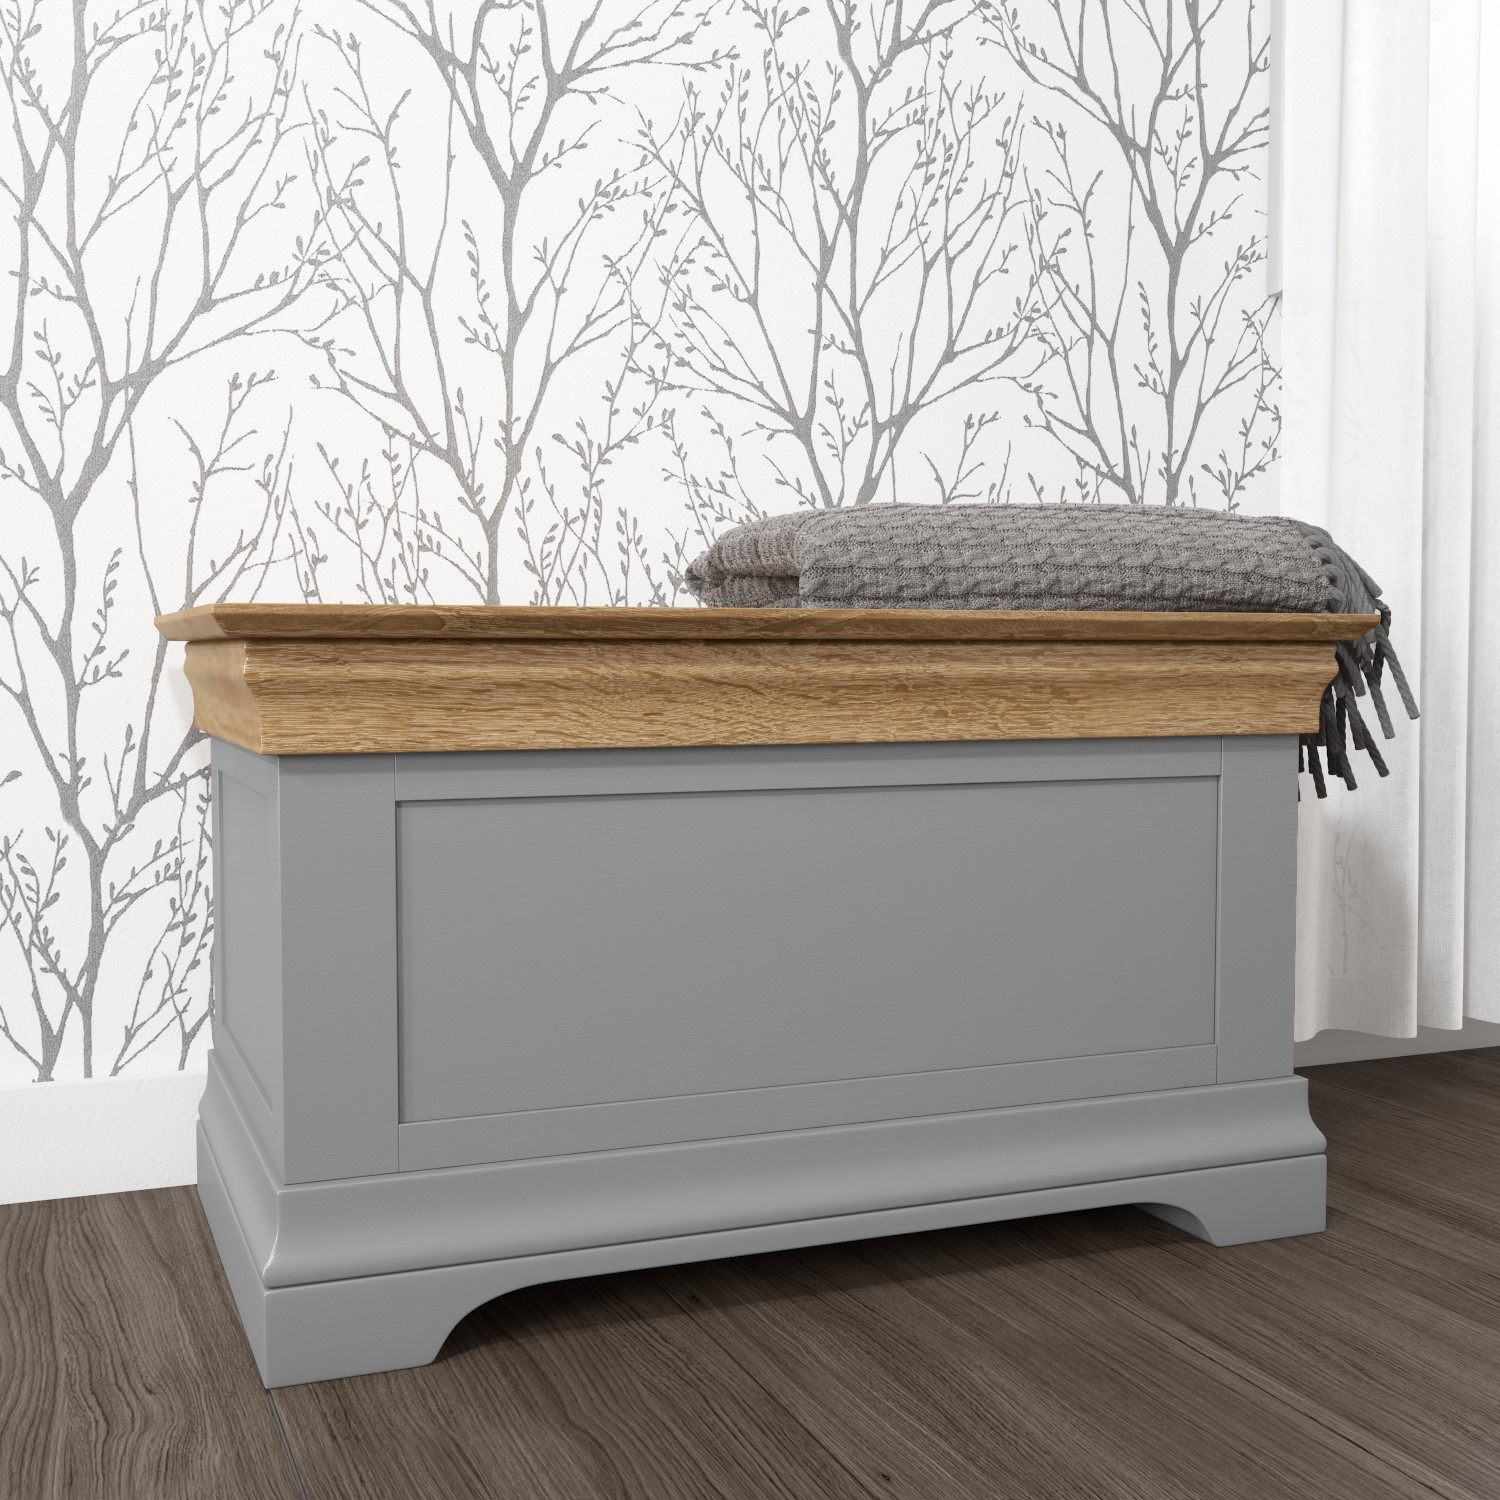 grey blanket box oak top solid wood bedroom storage toy chest cabinet trunk ebay. Black Bedroom Furniture Sets. Home Design Ideas